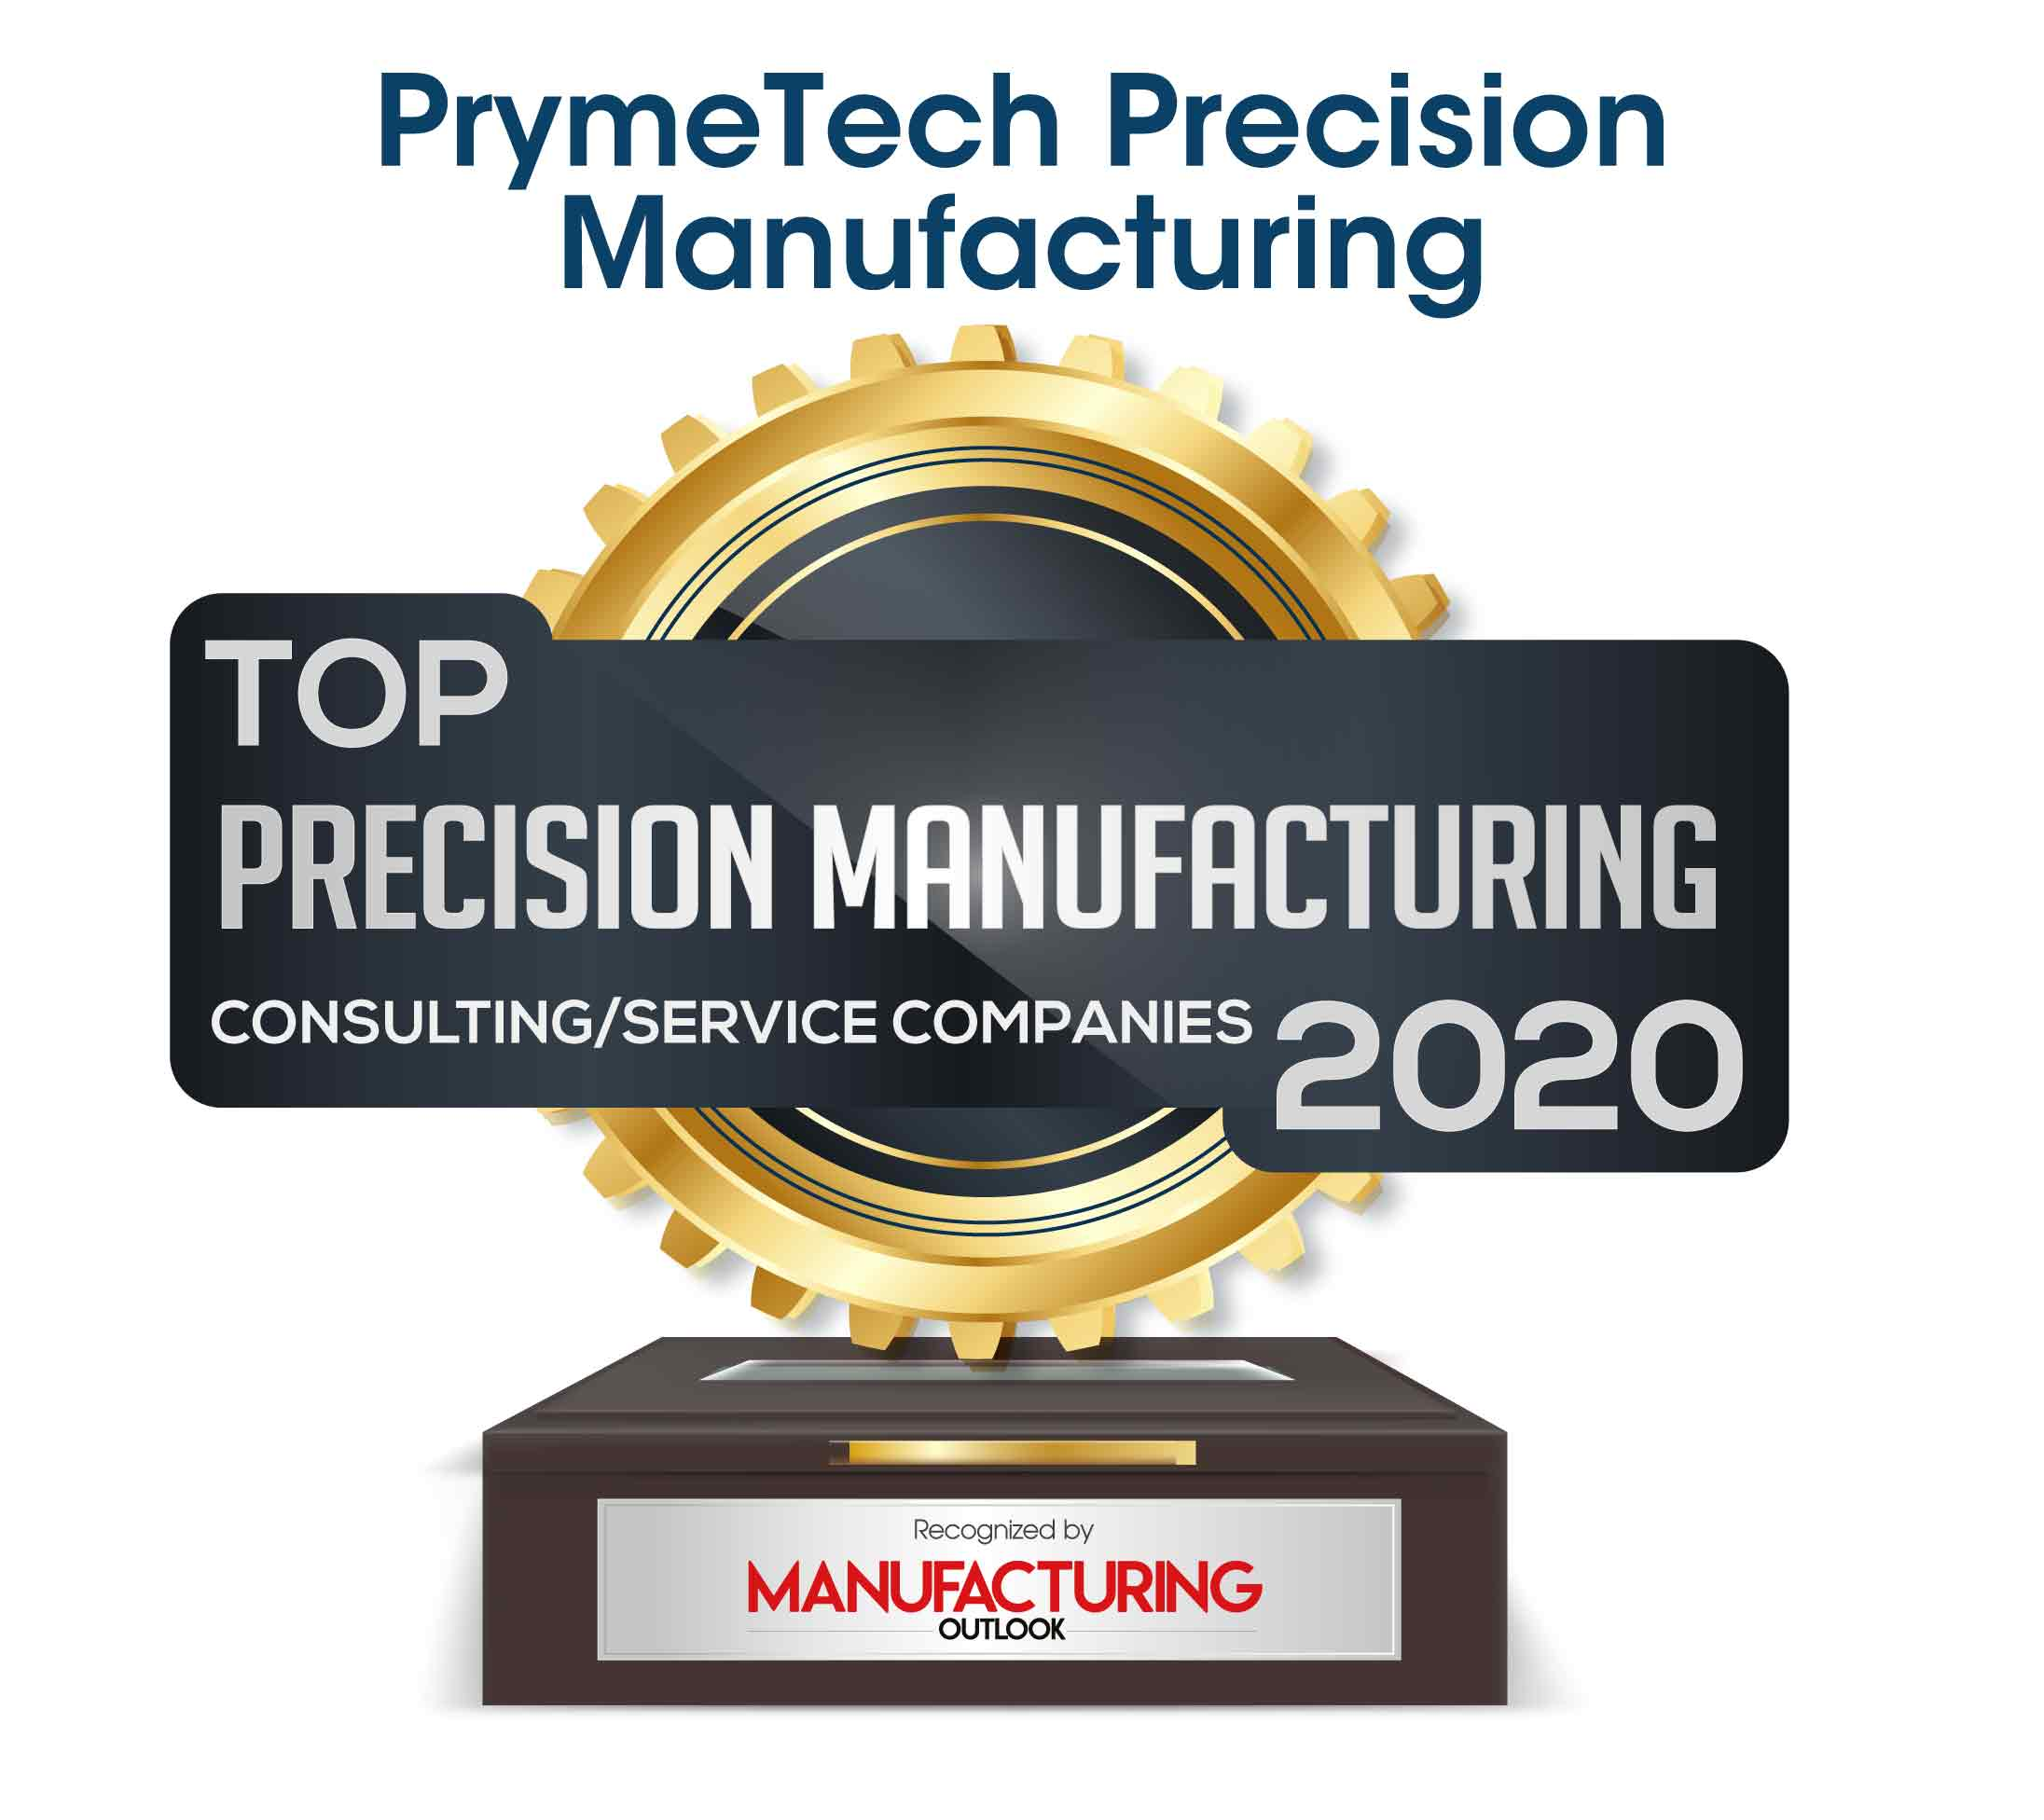 Top 10 Precision Manufacturing Consulting/Service Companies - 2020